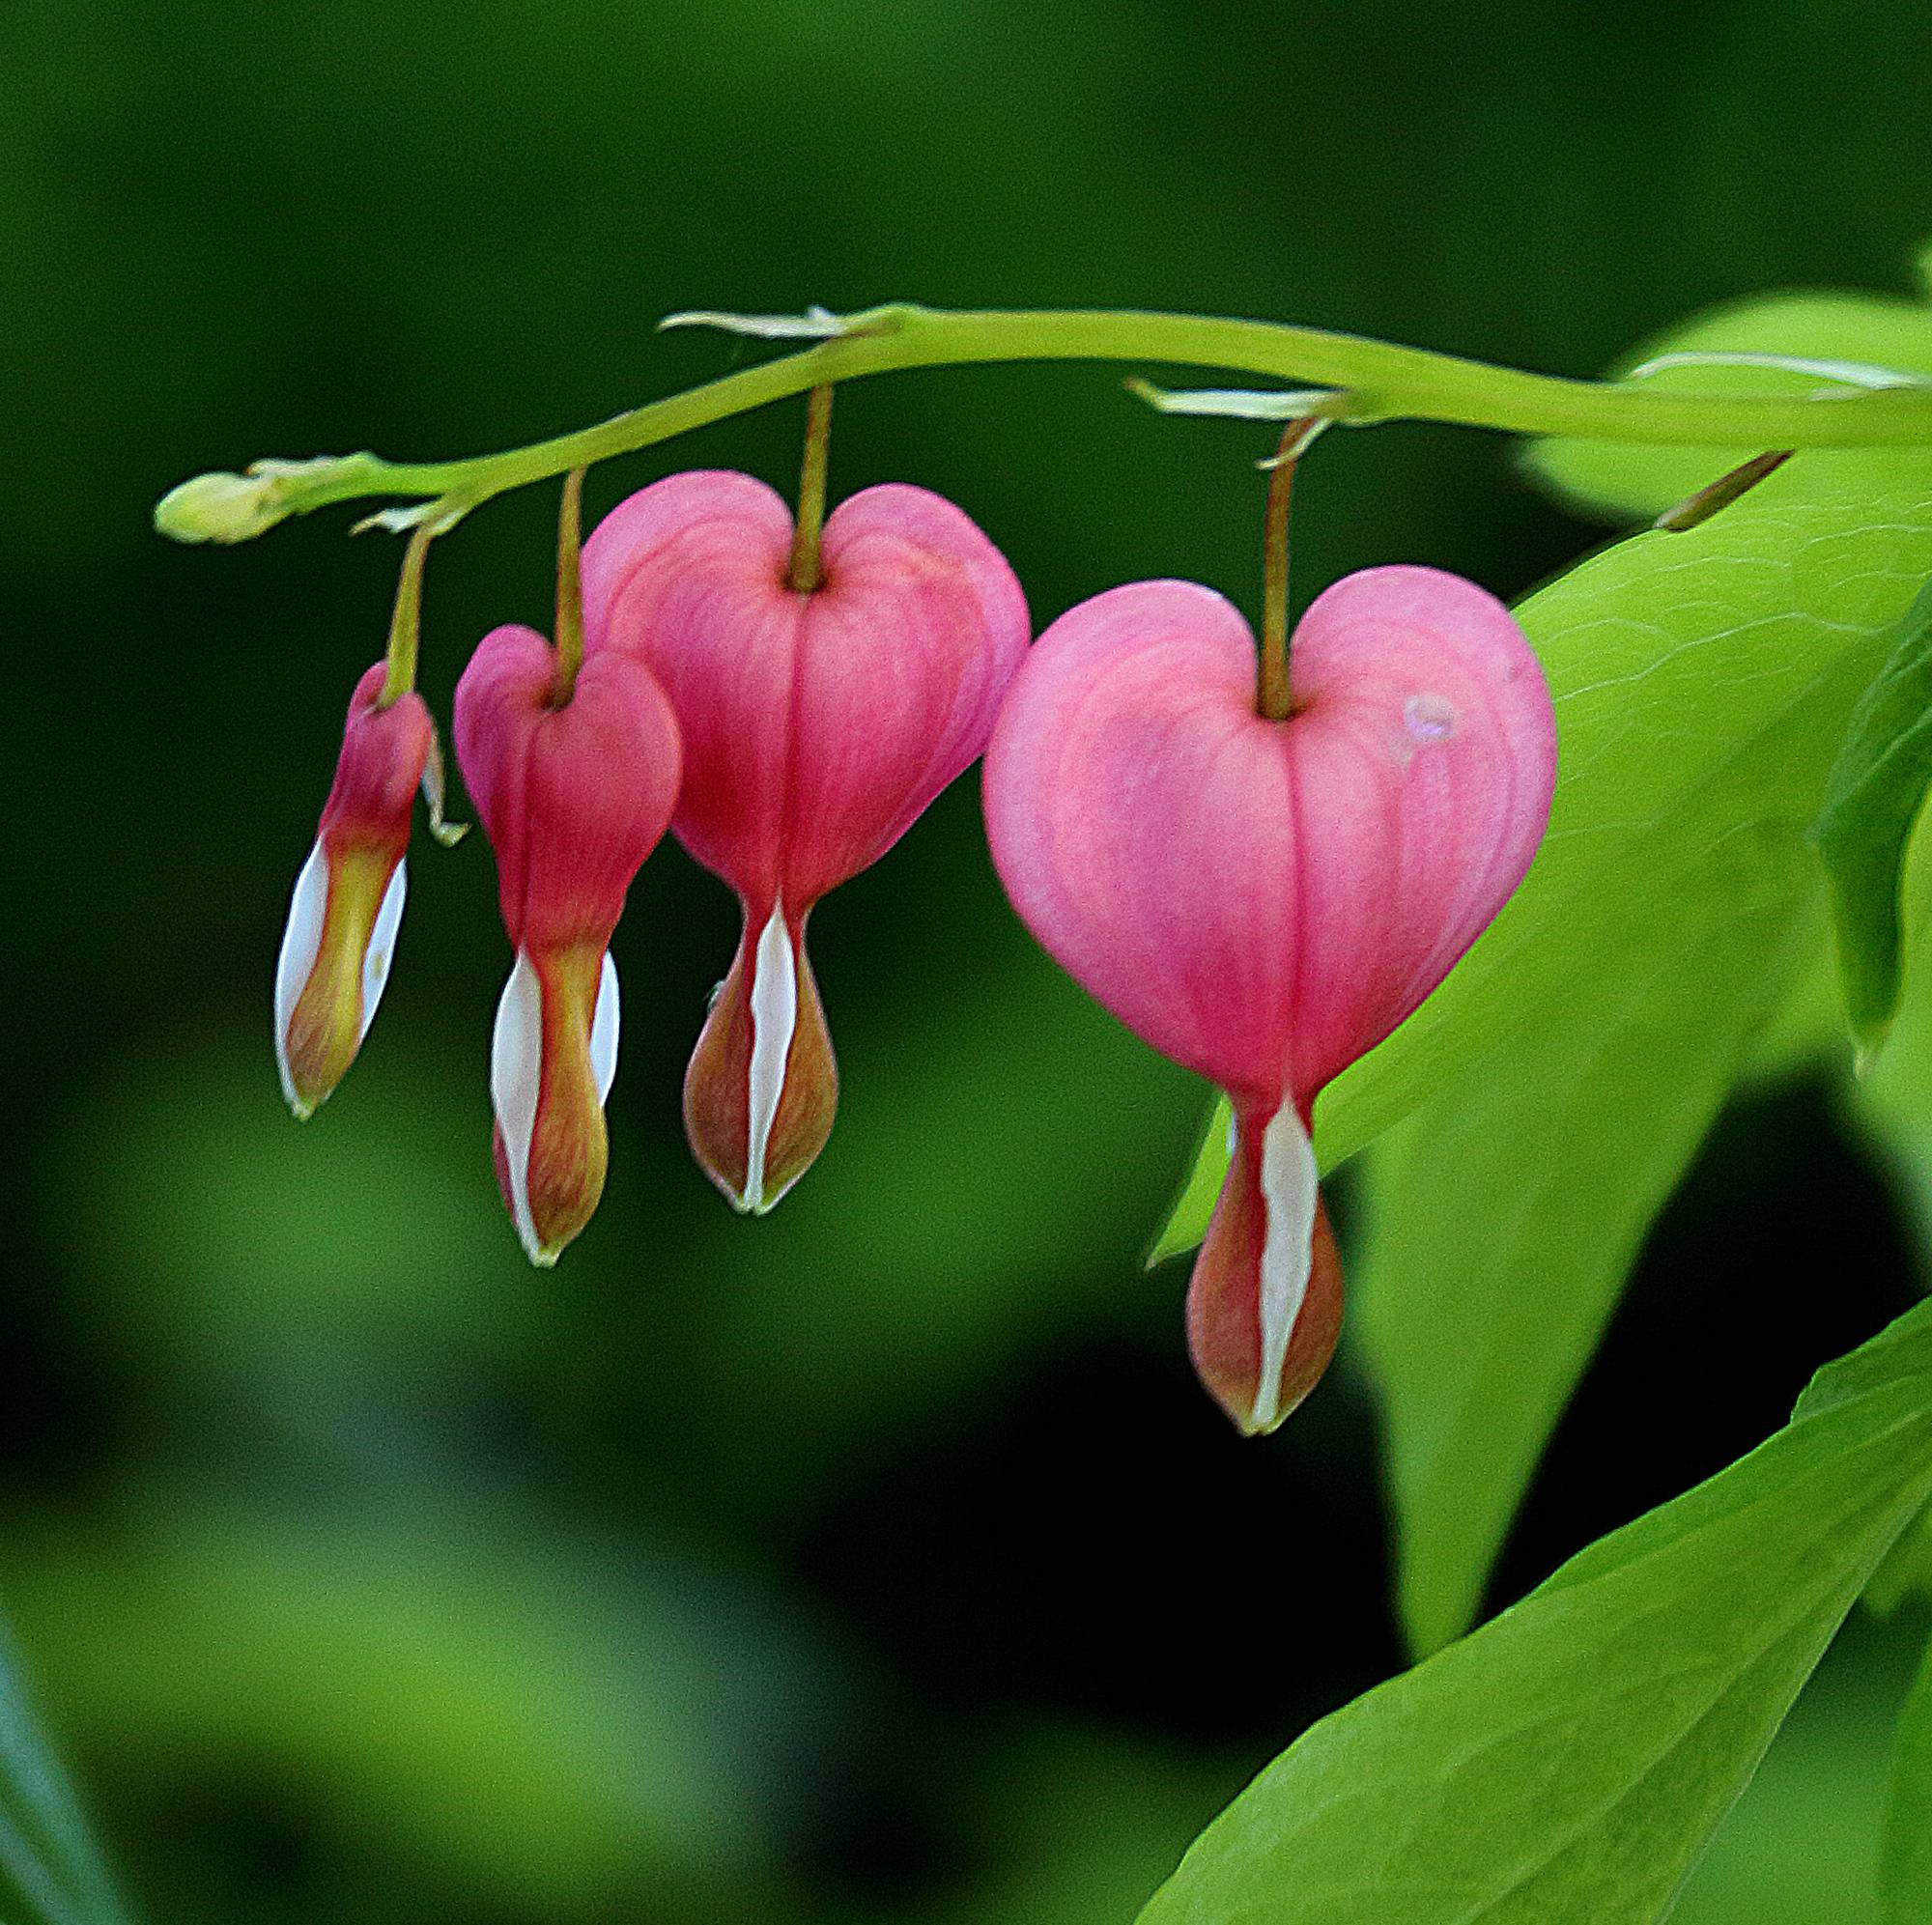 This is a photo of Bleeding Hearts, also called the Valentine Flower, I took at the Morton Arboretum, last week. This is a shade loving flowering plant. I was attracted by the brilliant colors and linear pattern of the bloom, hanging from slender stem that arches due to the weight of the flowers. At close inspection this relatively small flower has beautiful curved lines converging at the lower part of the heart, from which there is a leaf like colorful extension. The plant and the flower are poisonous, to be kept away from children.